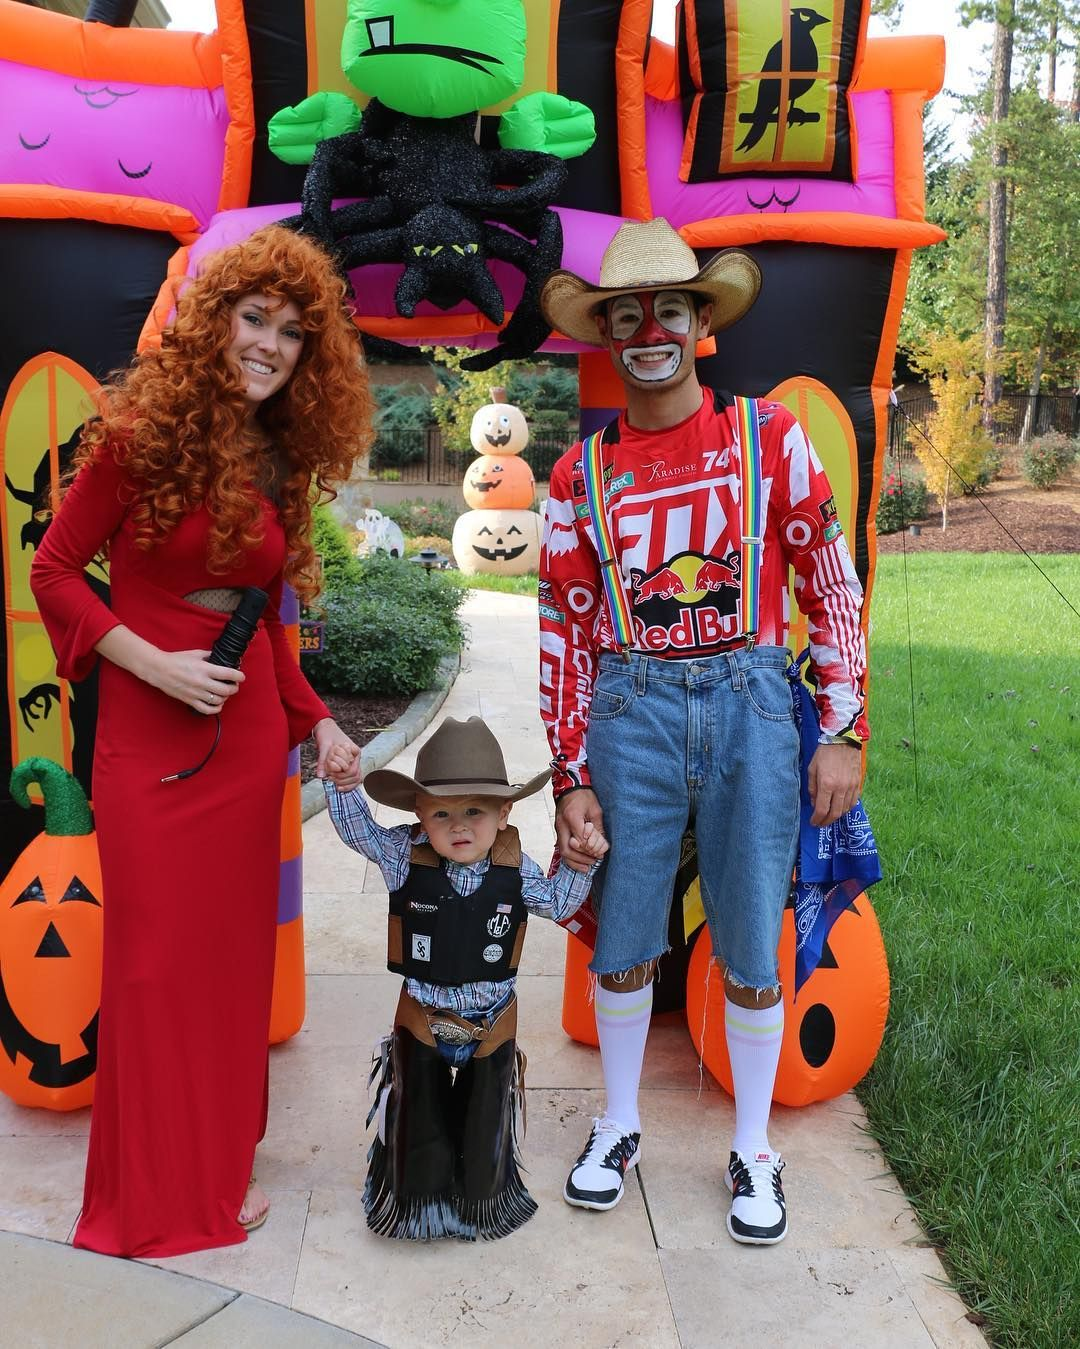 Kyle Larson family Had a fun Halloween party at the house